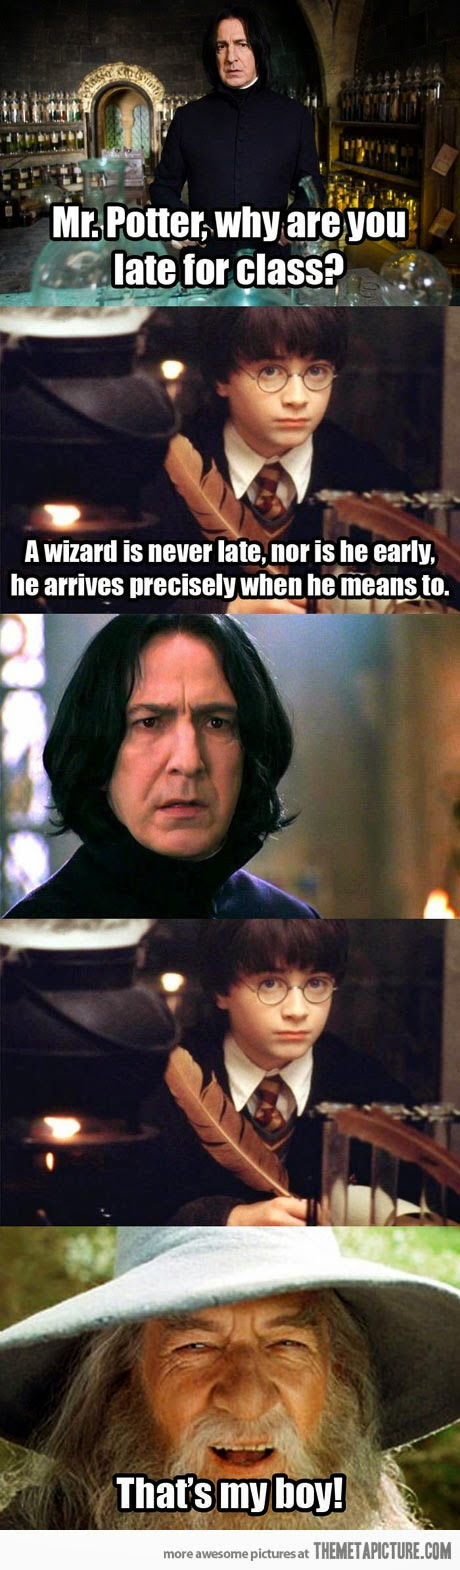 Funny Harry Potter Snape wizards